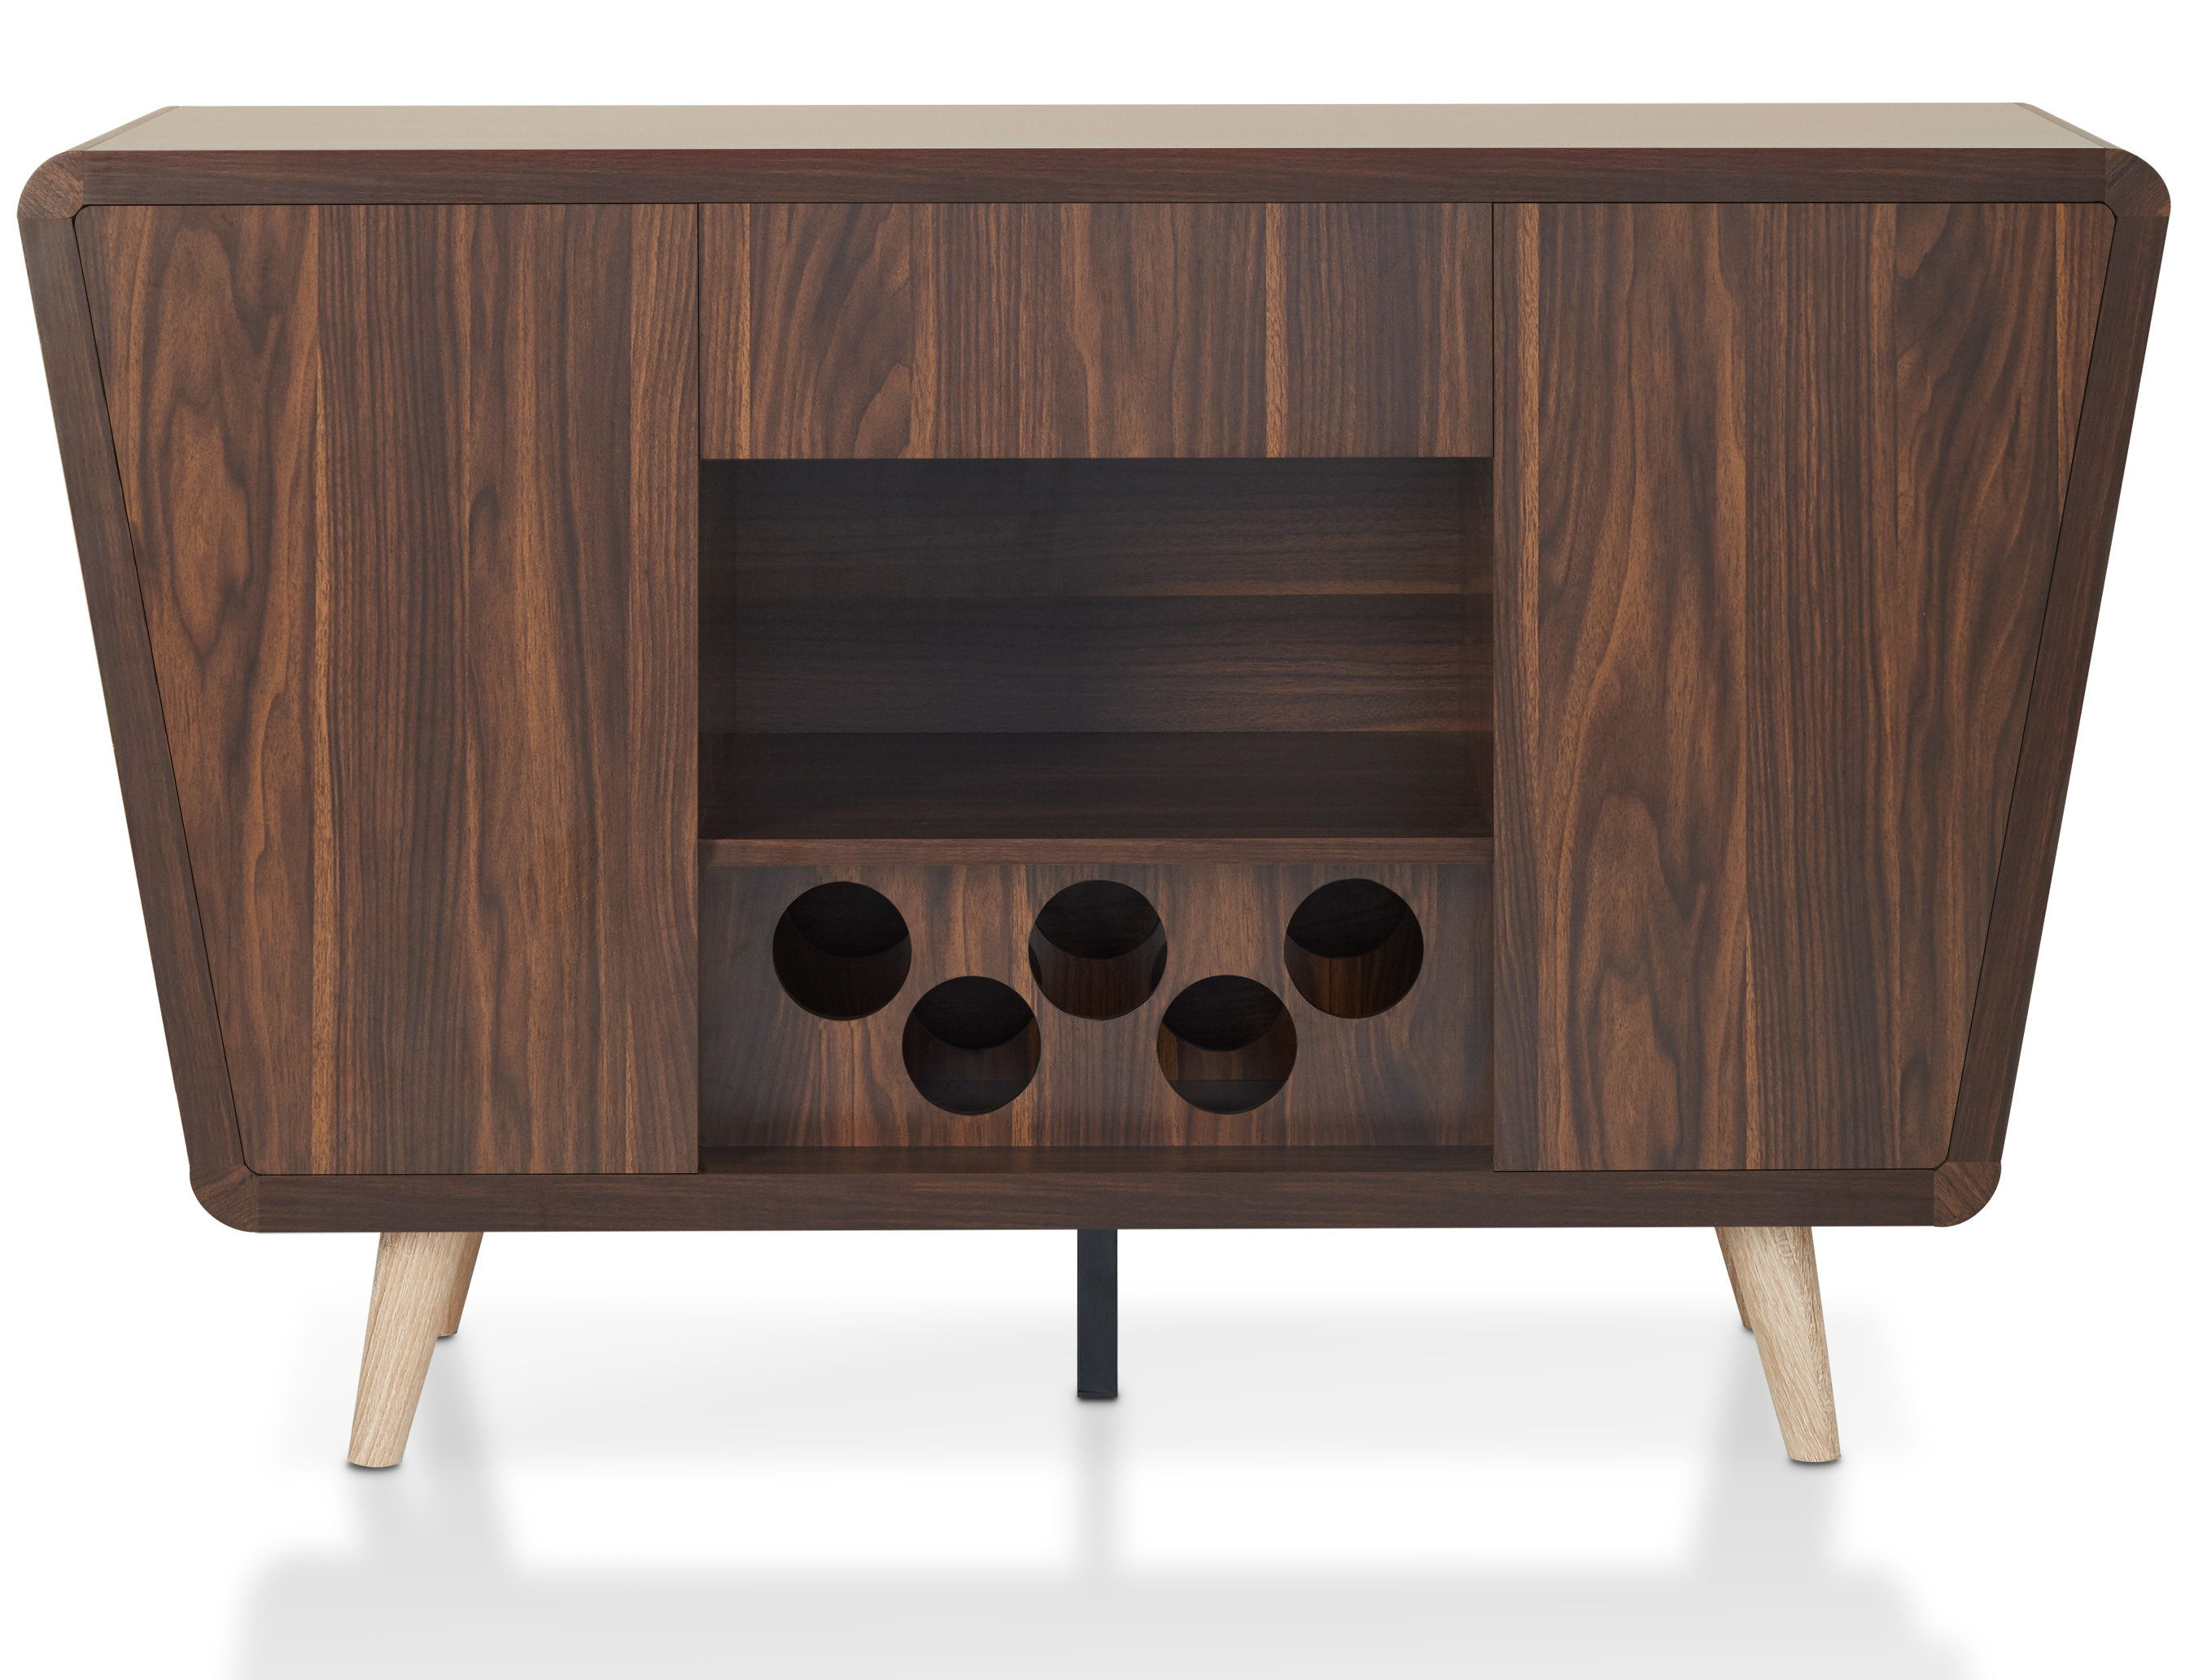 Wendell Sideboards Intended For 2020 Modern Wade Logan Sideboards + Buffets (Gallery 17 of 20)